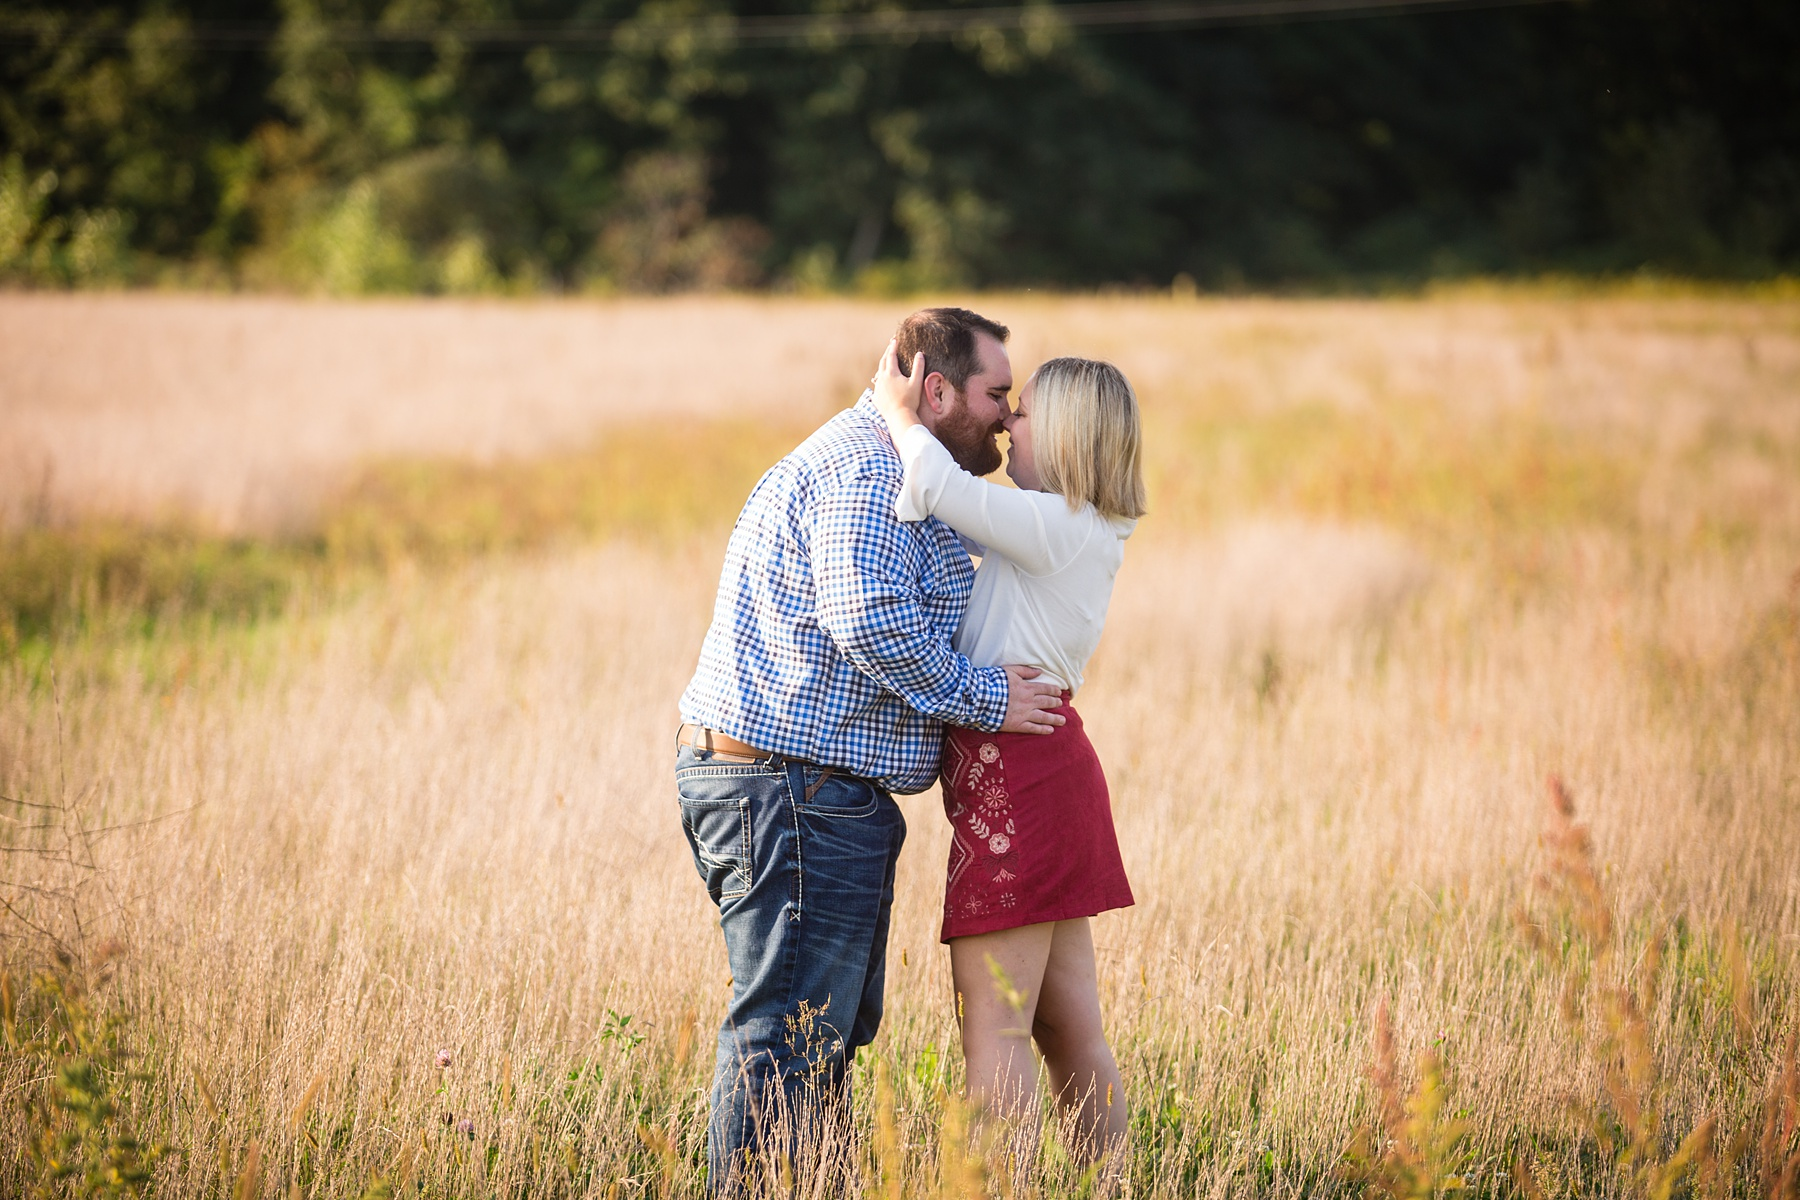 Brandon_Shafer_Photography_Megan_Nate_West_Michigan_Engagement_Photos_0009.jpg